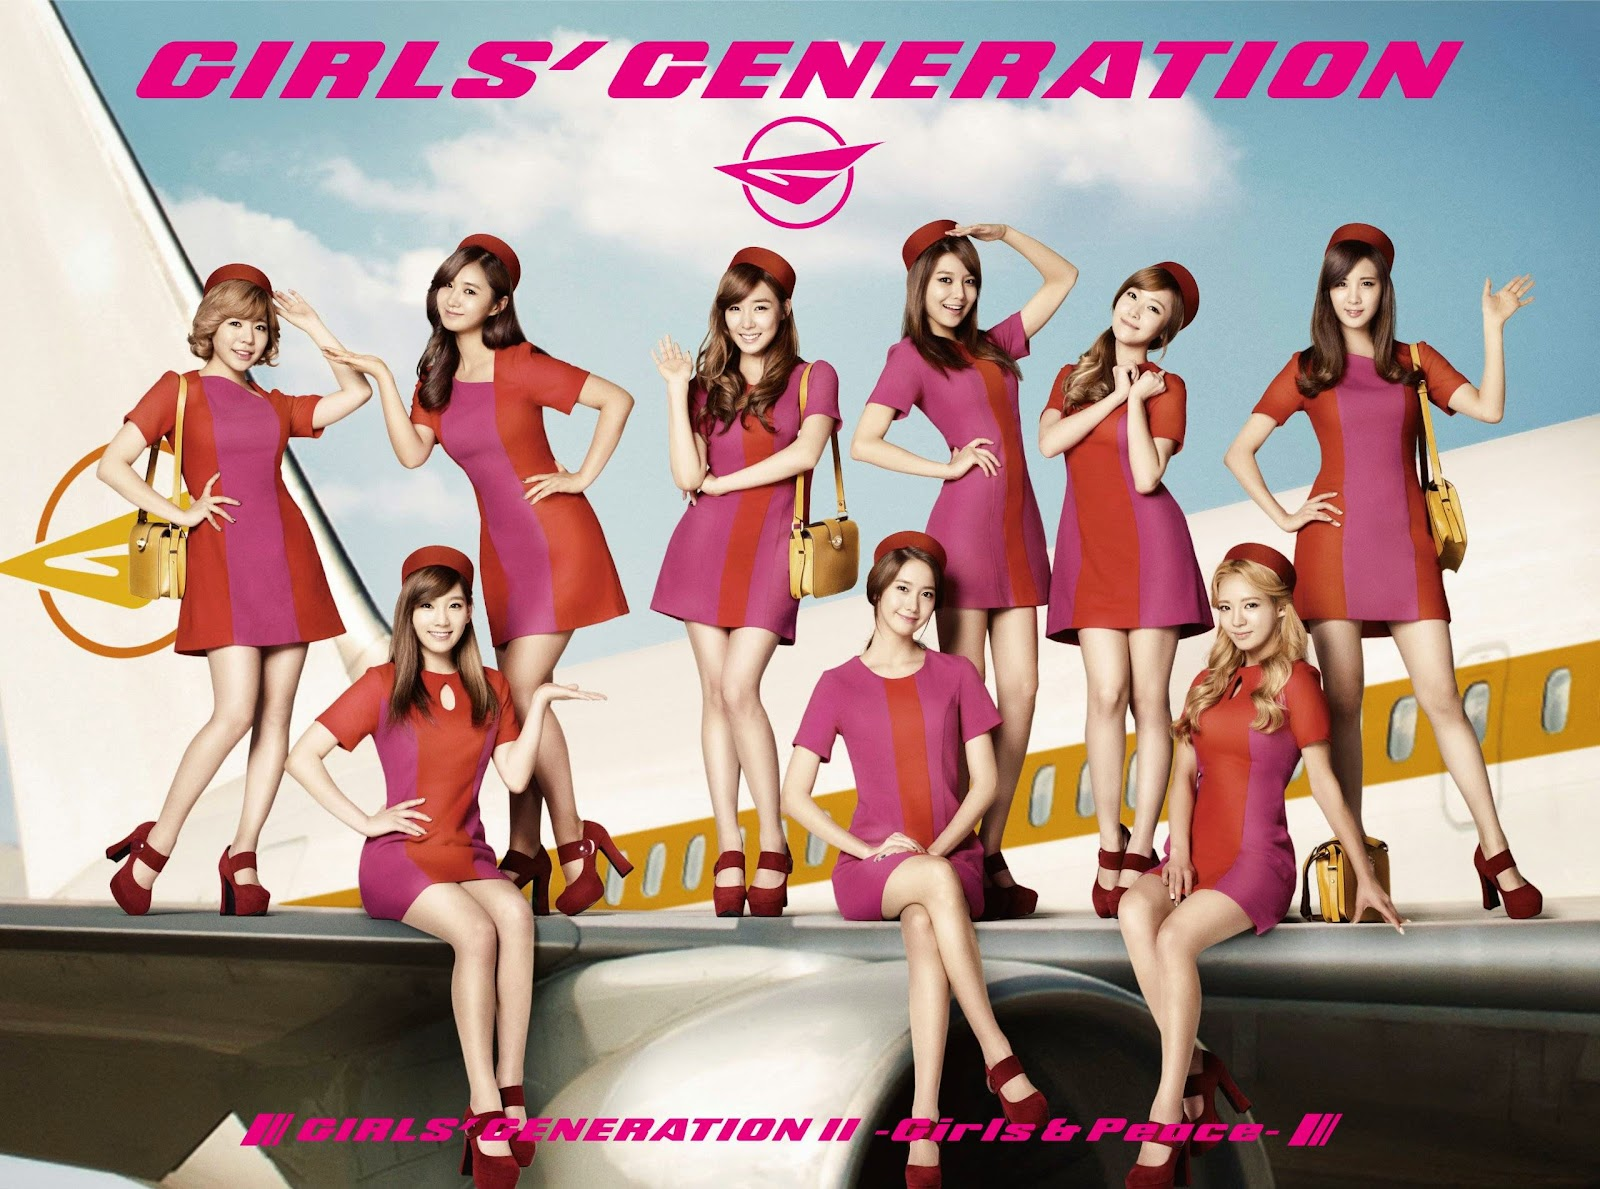 http://1.bp.blogspot.com/-3R8Gu06z8jo/UU8ozWTbBgI/AAAAAAAAPQ8/Hg83S1V6INQ/s1600/SNSD+stewardess+girl+and+peace+costume+group+1_4.jpg